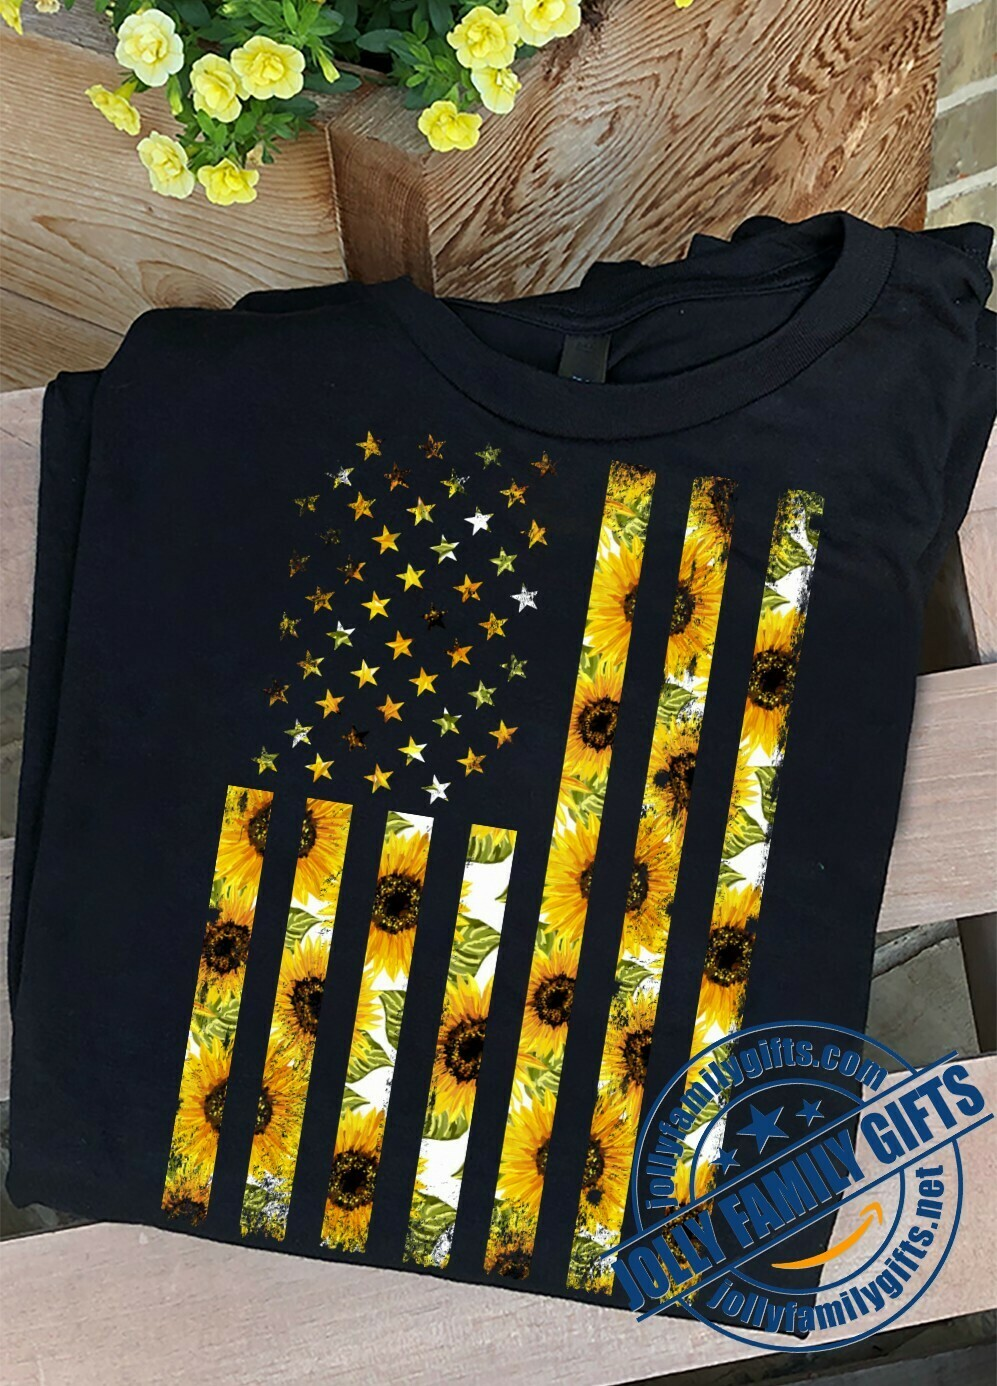 Here Comes The Sun Flower Choose Kindness,Hippie Love Peace Freedom Sun Flower Floral Cute T-shirt Unisex T-Shirt Hoodie Sweatshirt Sweater for Ladies Women Men Kids Youth Gifts Tee Jolly Family Gifts